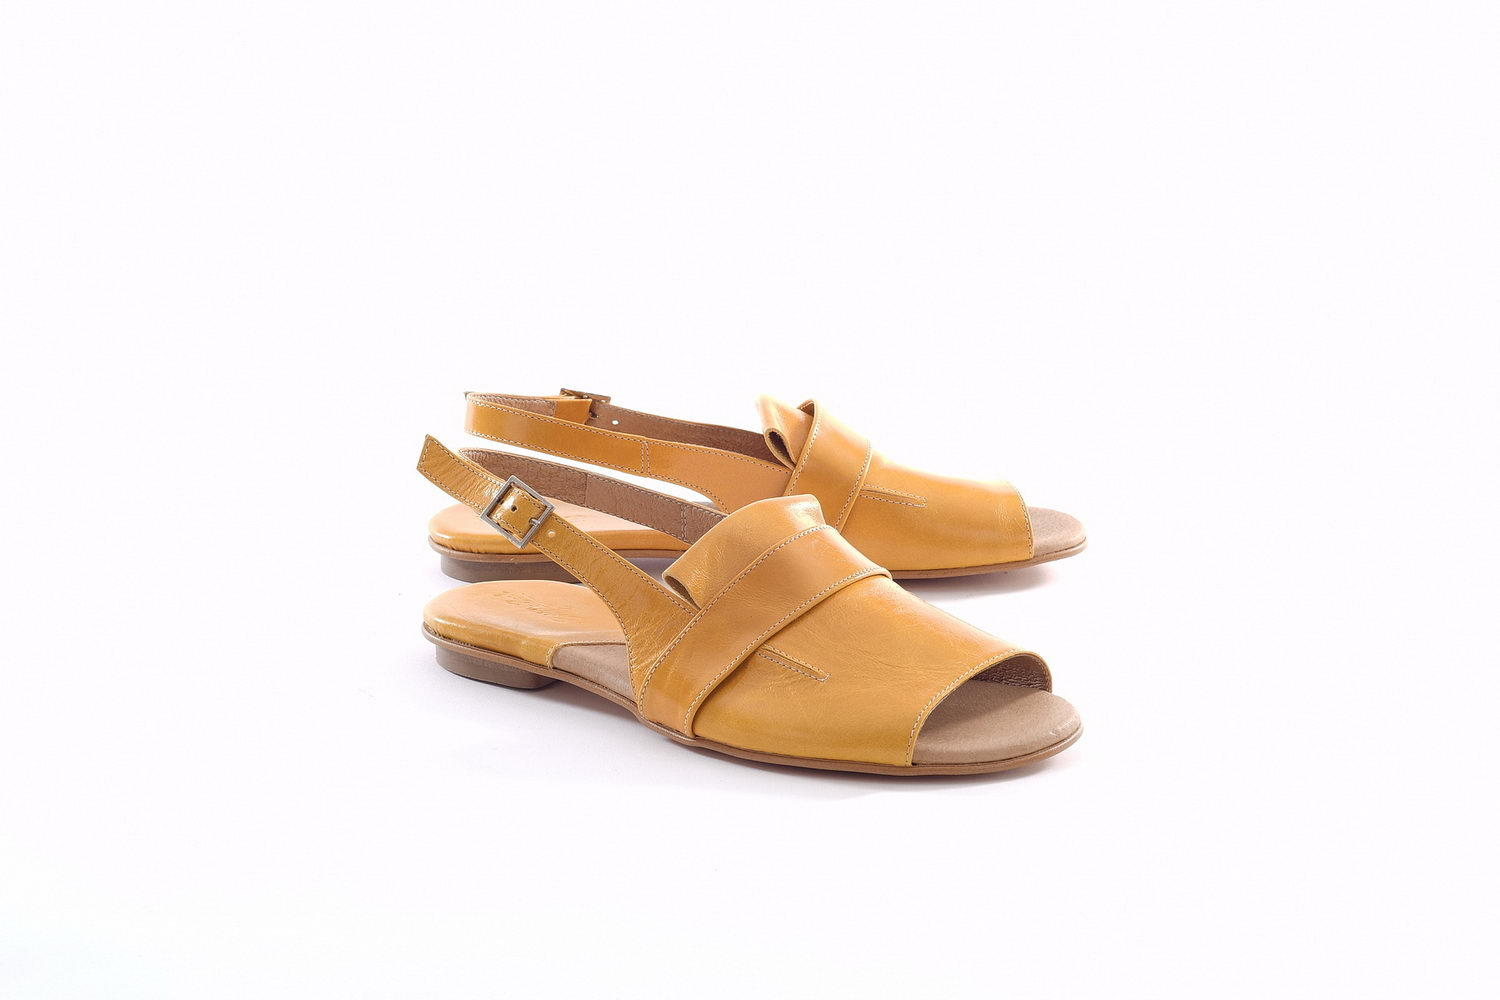 Millie Sandals - Yellow